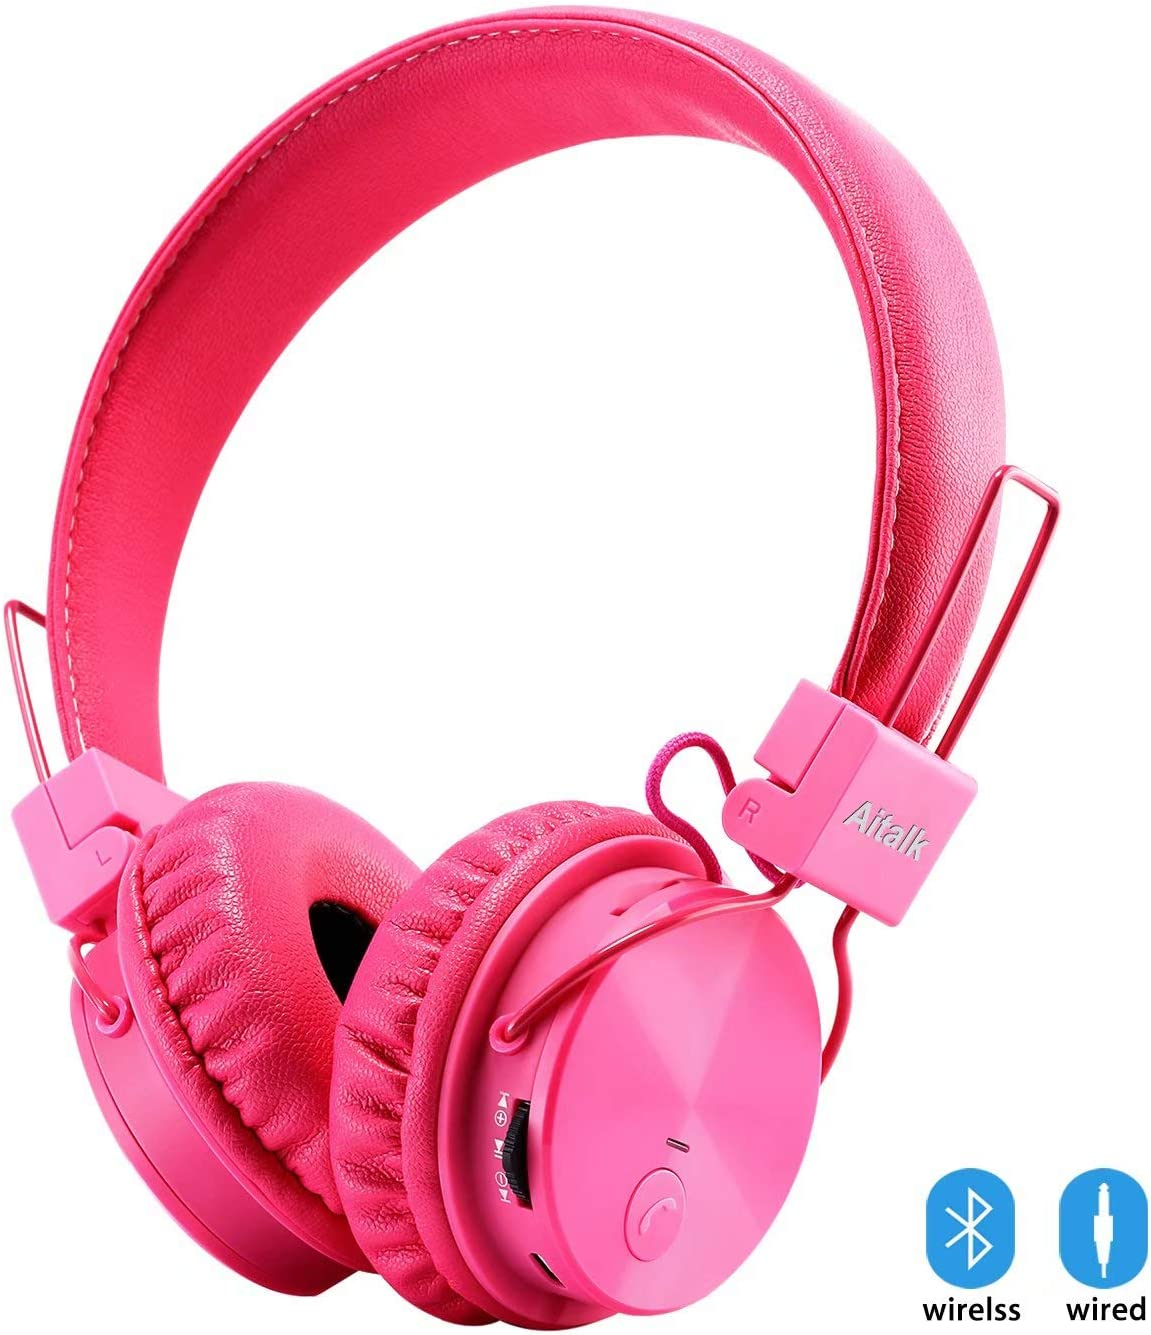 Kids Headphones Bluetooth, Foldable Wireless Wired Stereo HD On-Ear Headset with 3.5mm Jack SD Card FM Radio Microphone Volume Control Over Ear Children Headphones for Girls Boys School iPhone, Pink